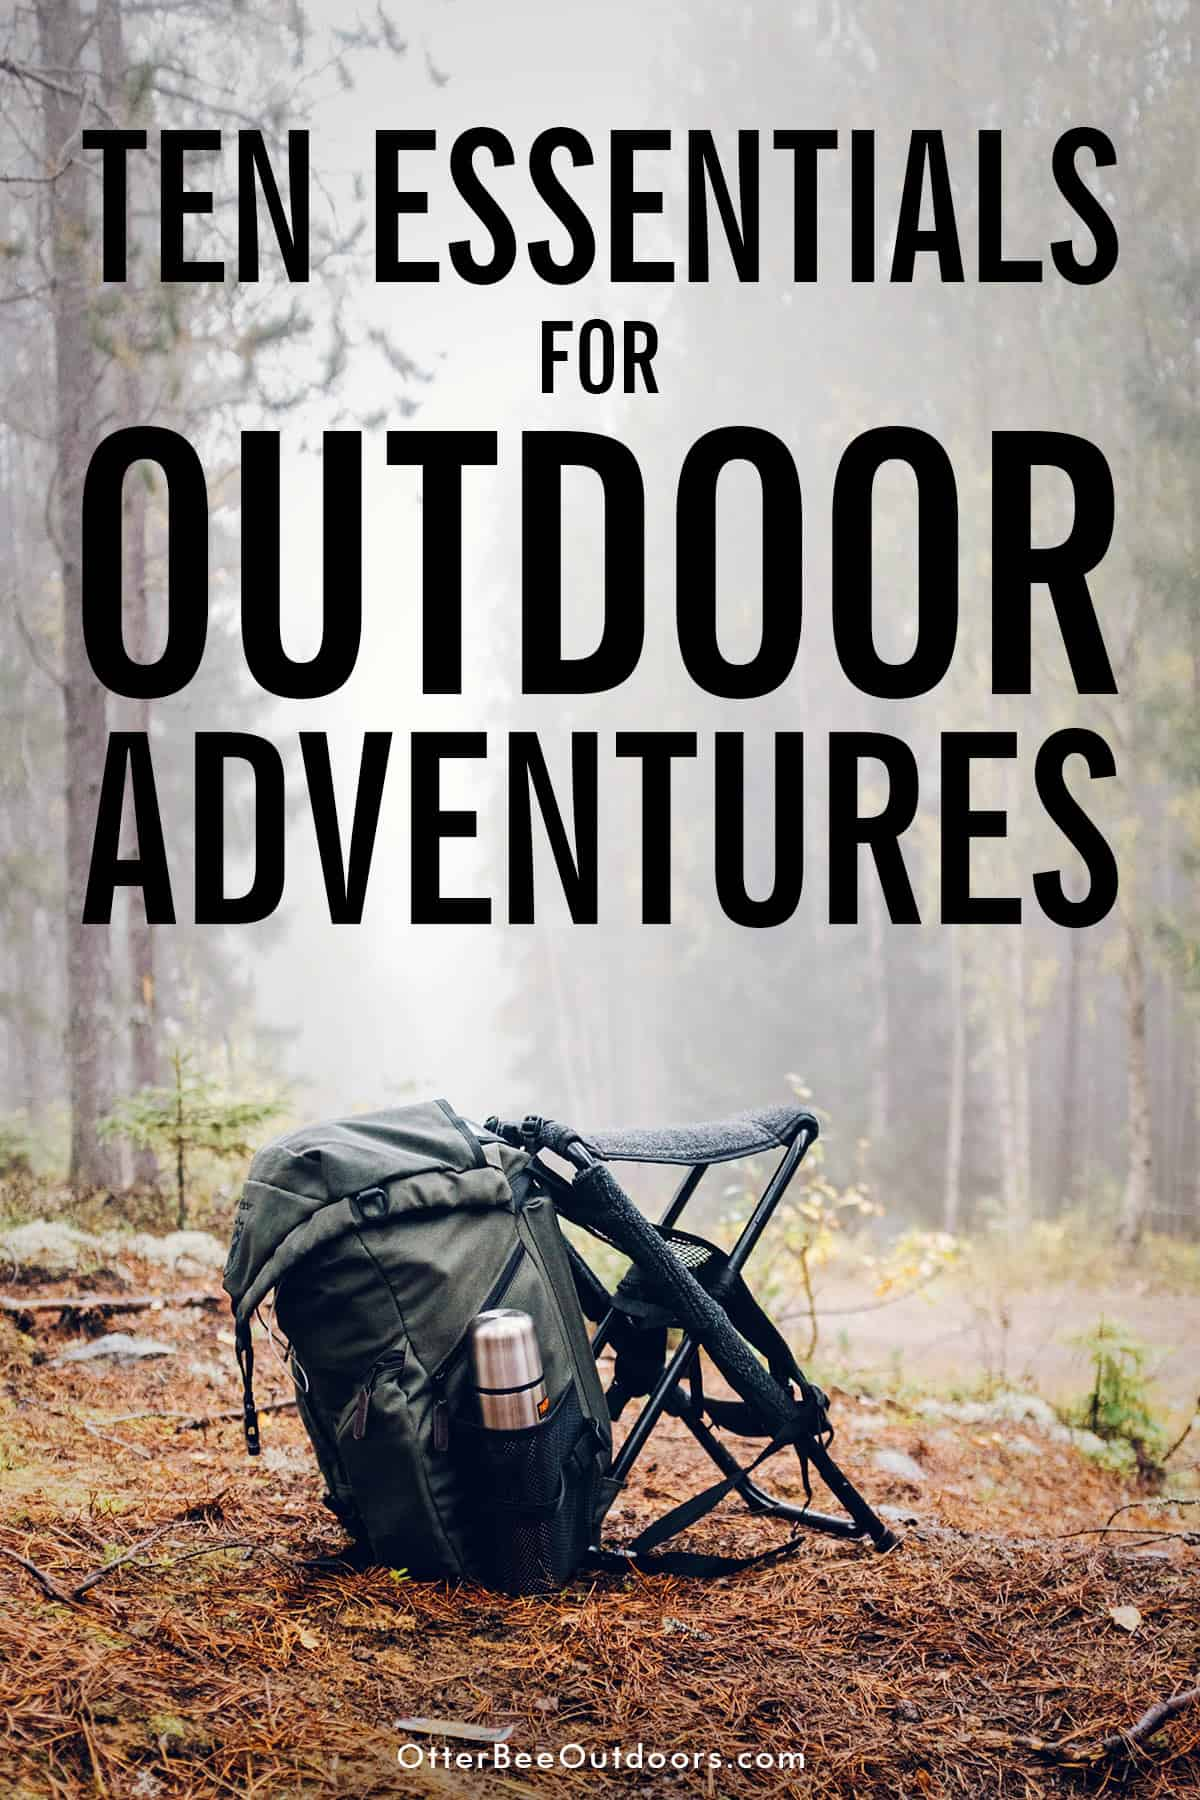 Backpack to the side of a trail in the woods. The graphic says, Ten Essentials for Outdoor Adventures.